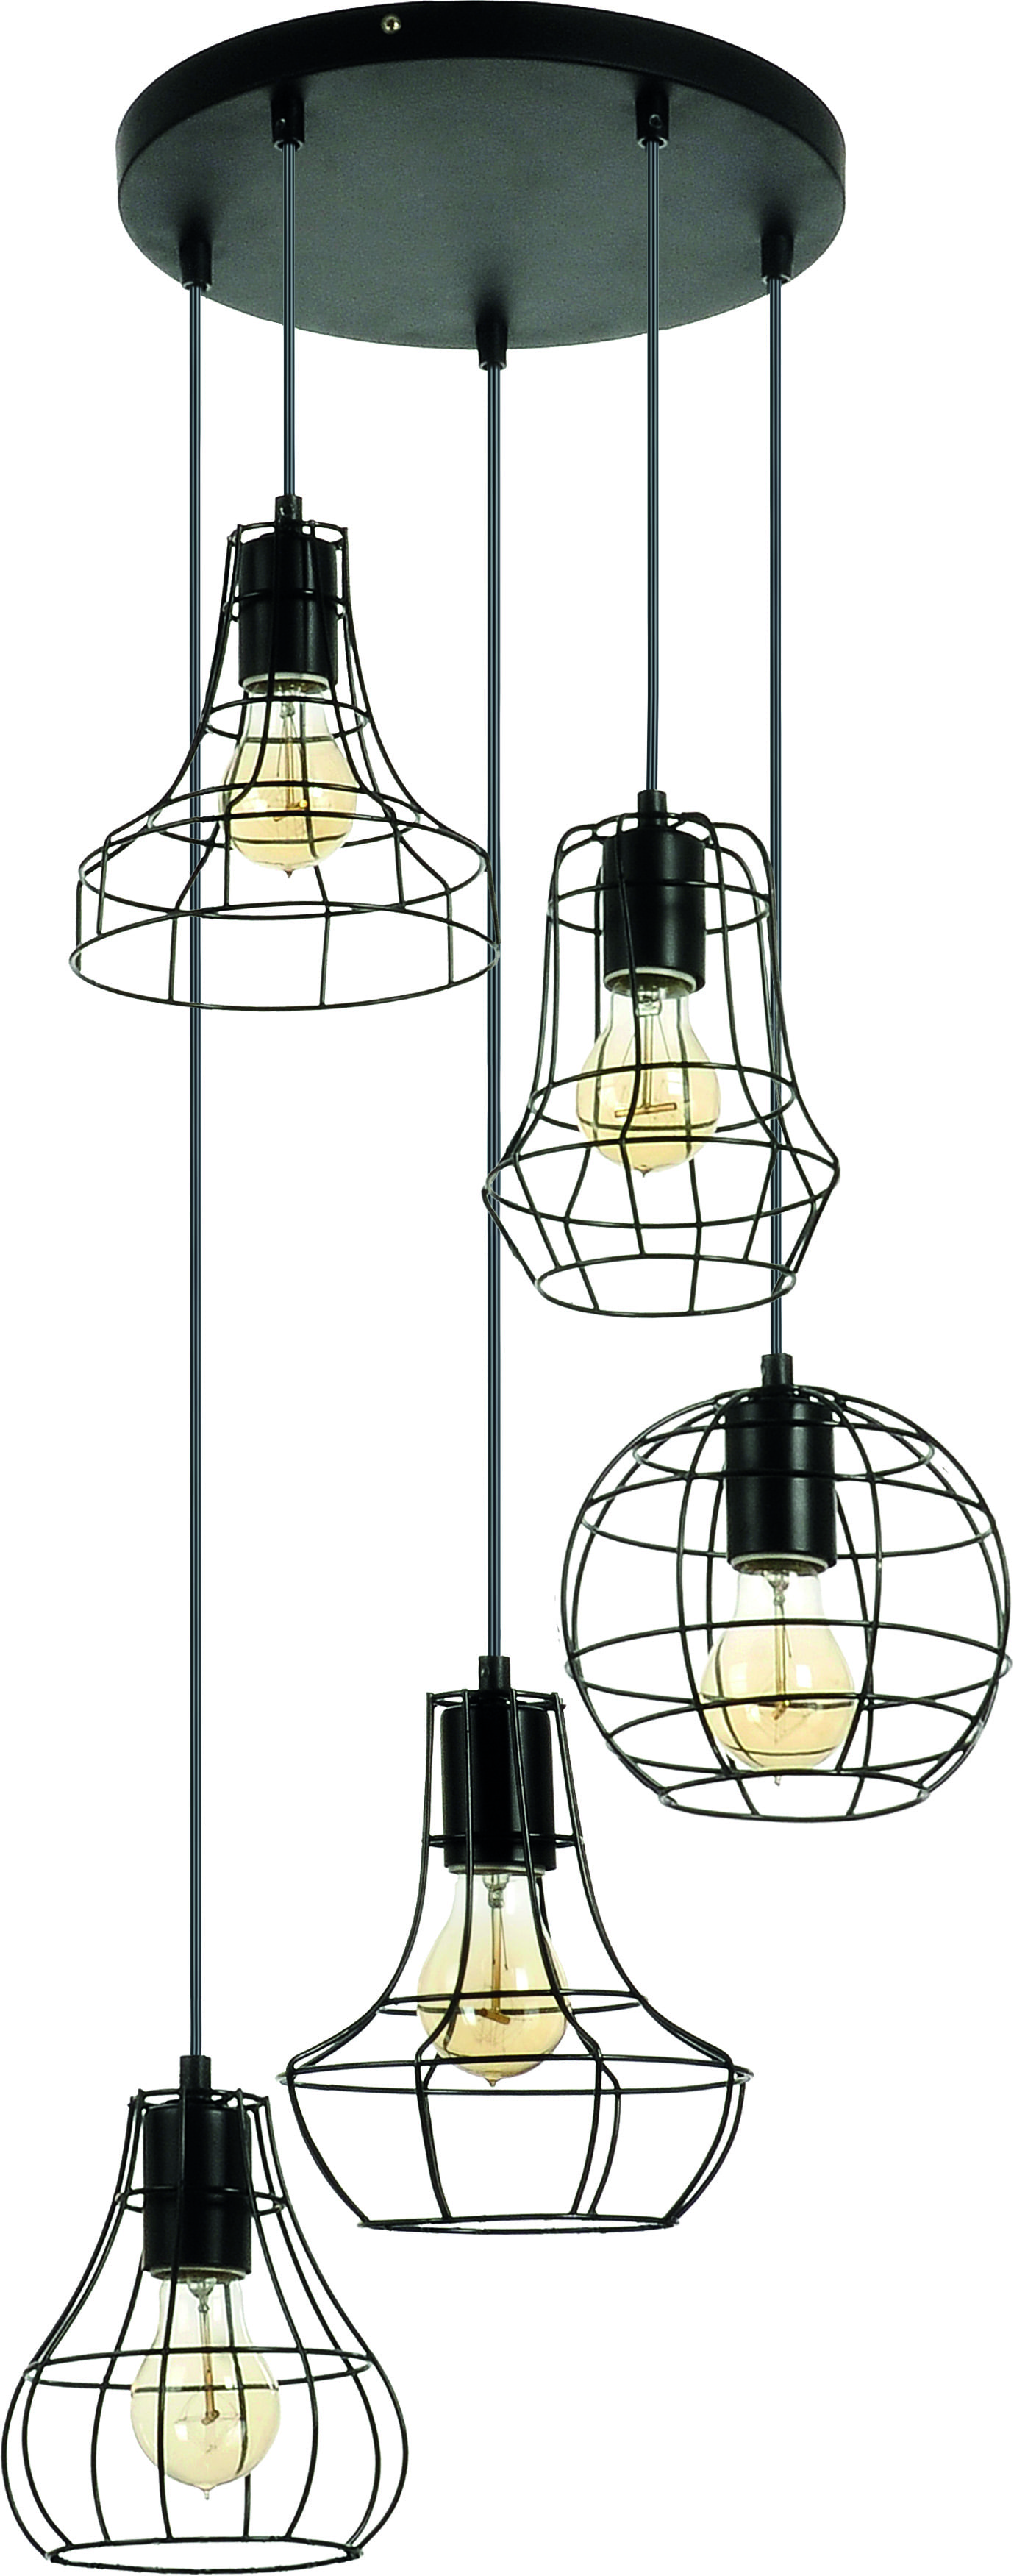 Loft 5-point hanging lamp Outline Cage